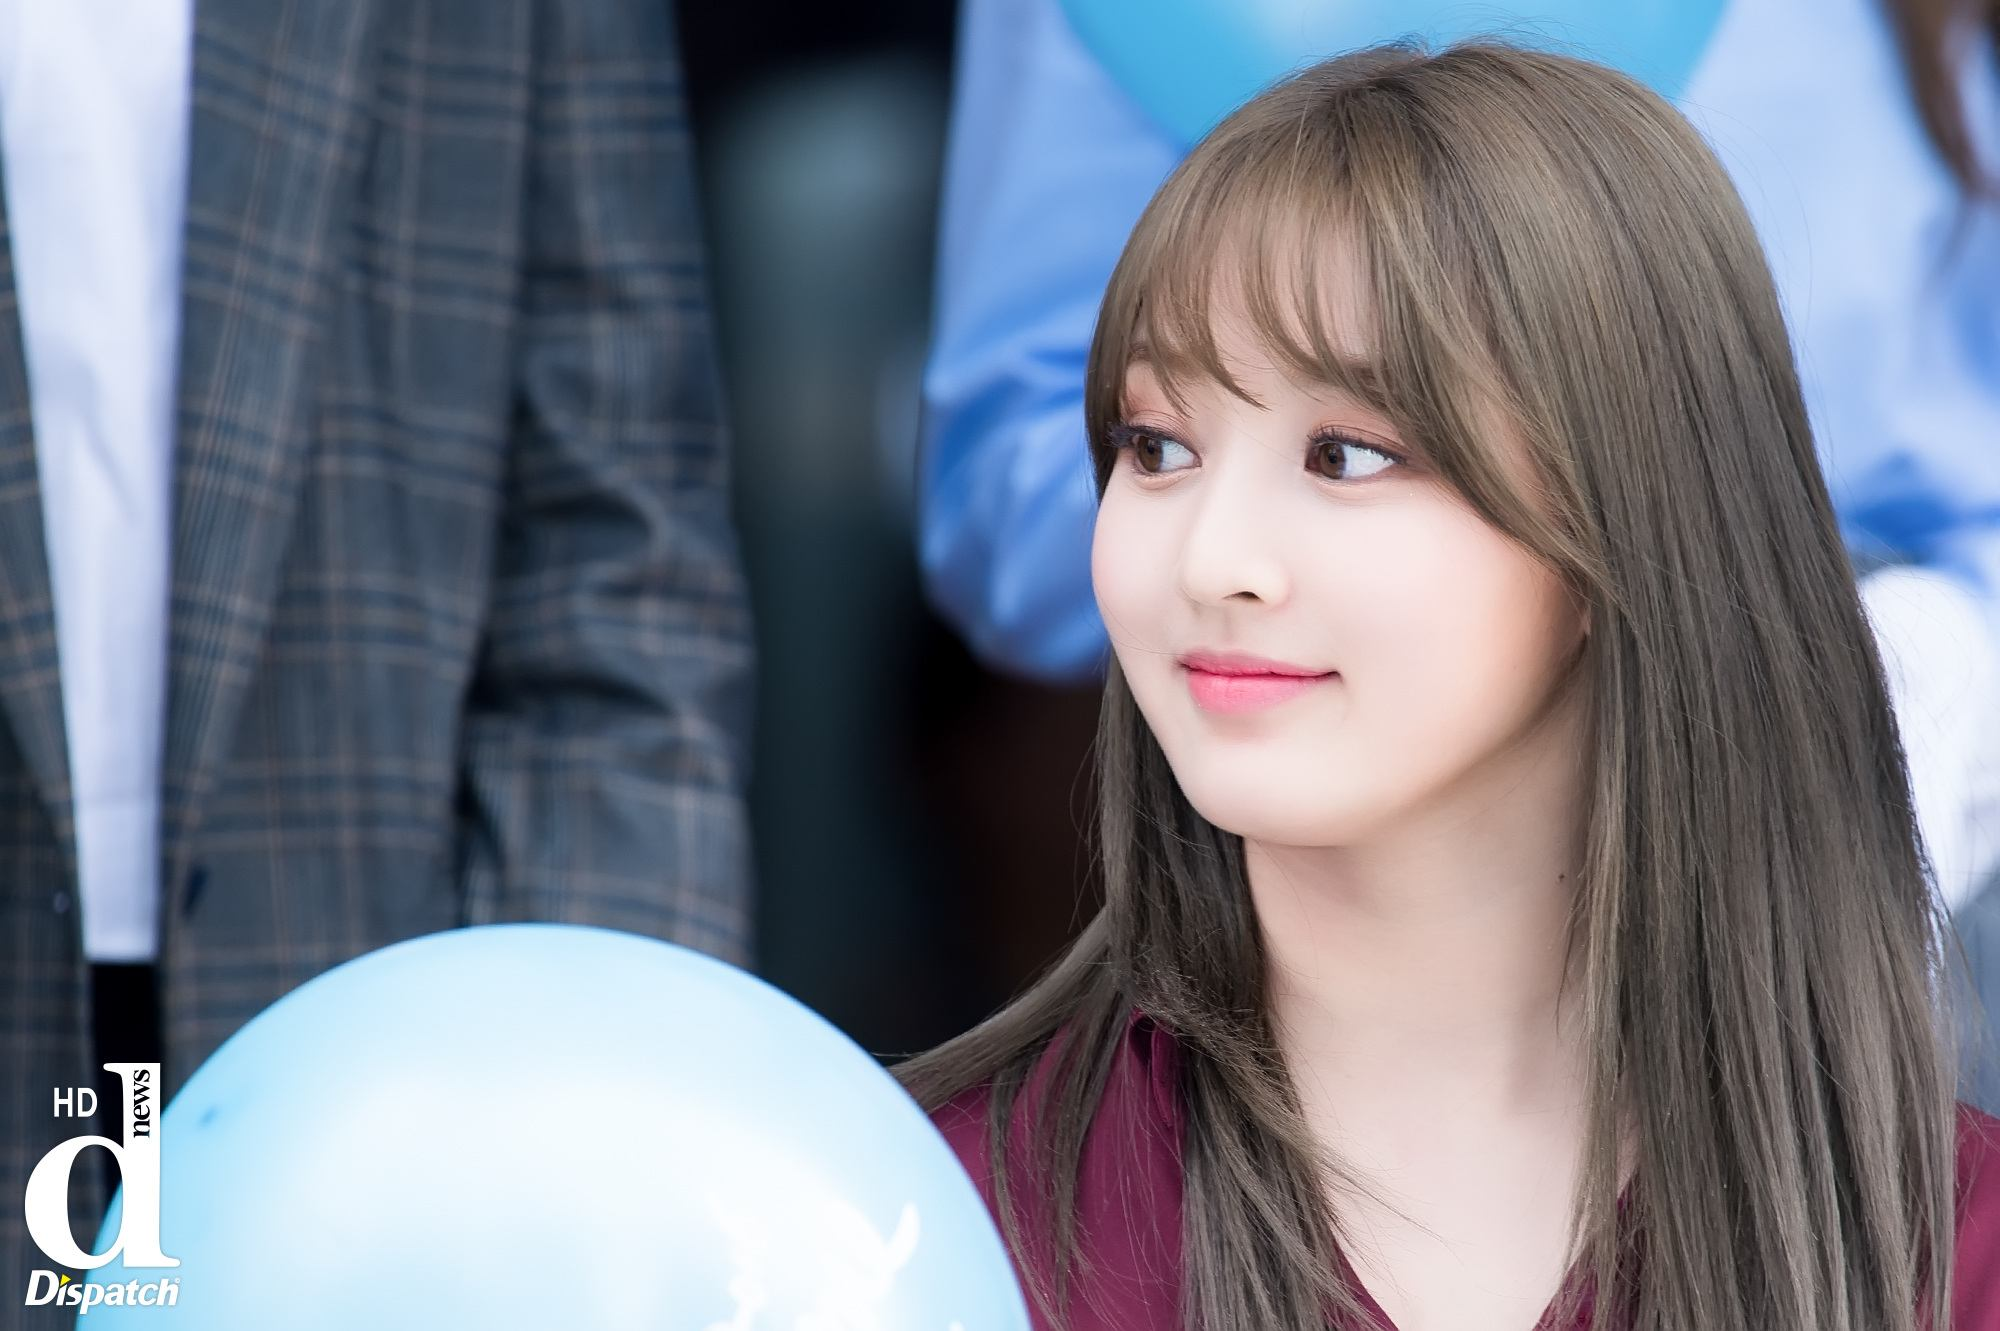 Cute Anime Wallpaper Hd Baby Pictures Of Twice Jihyo Goes Viral For Her Beauty